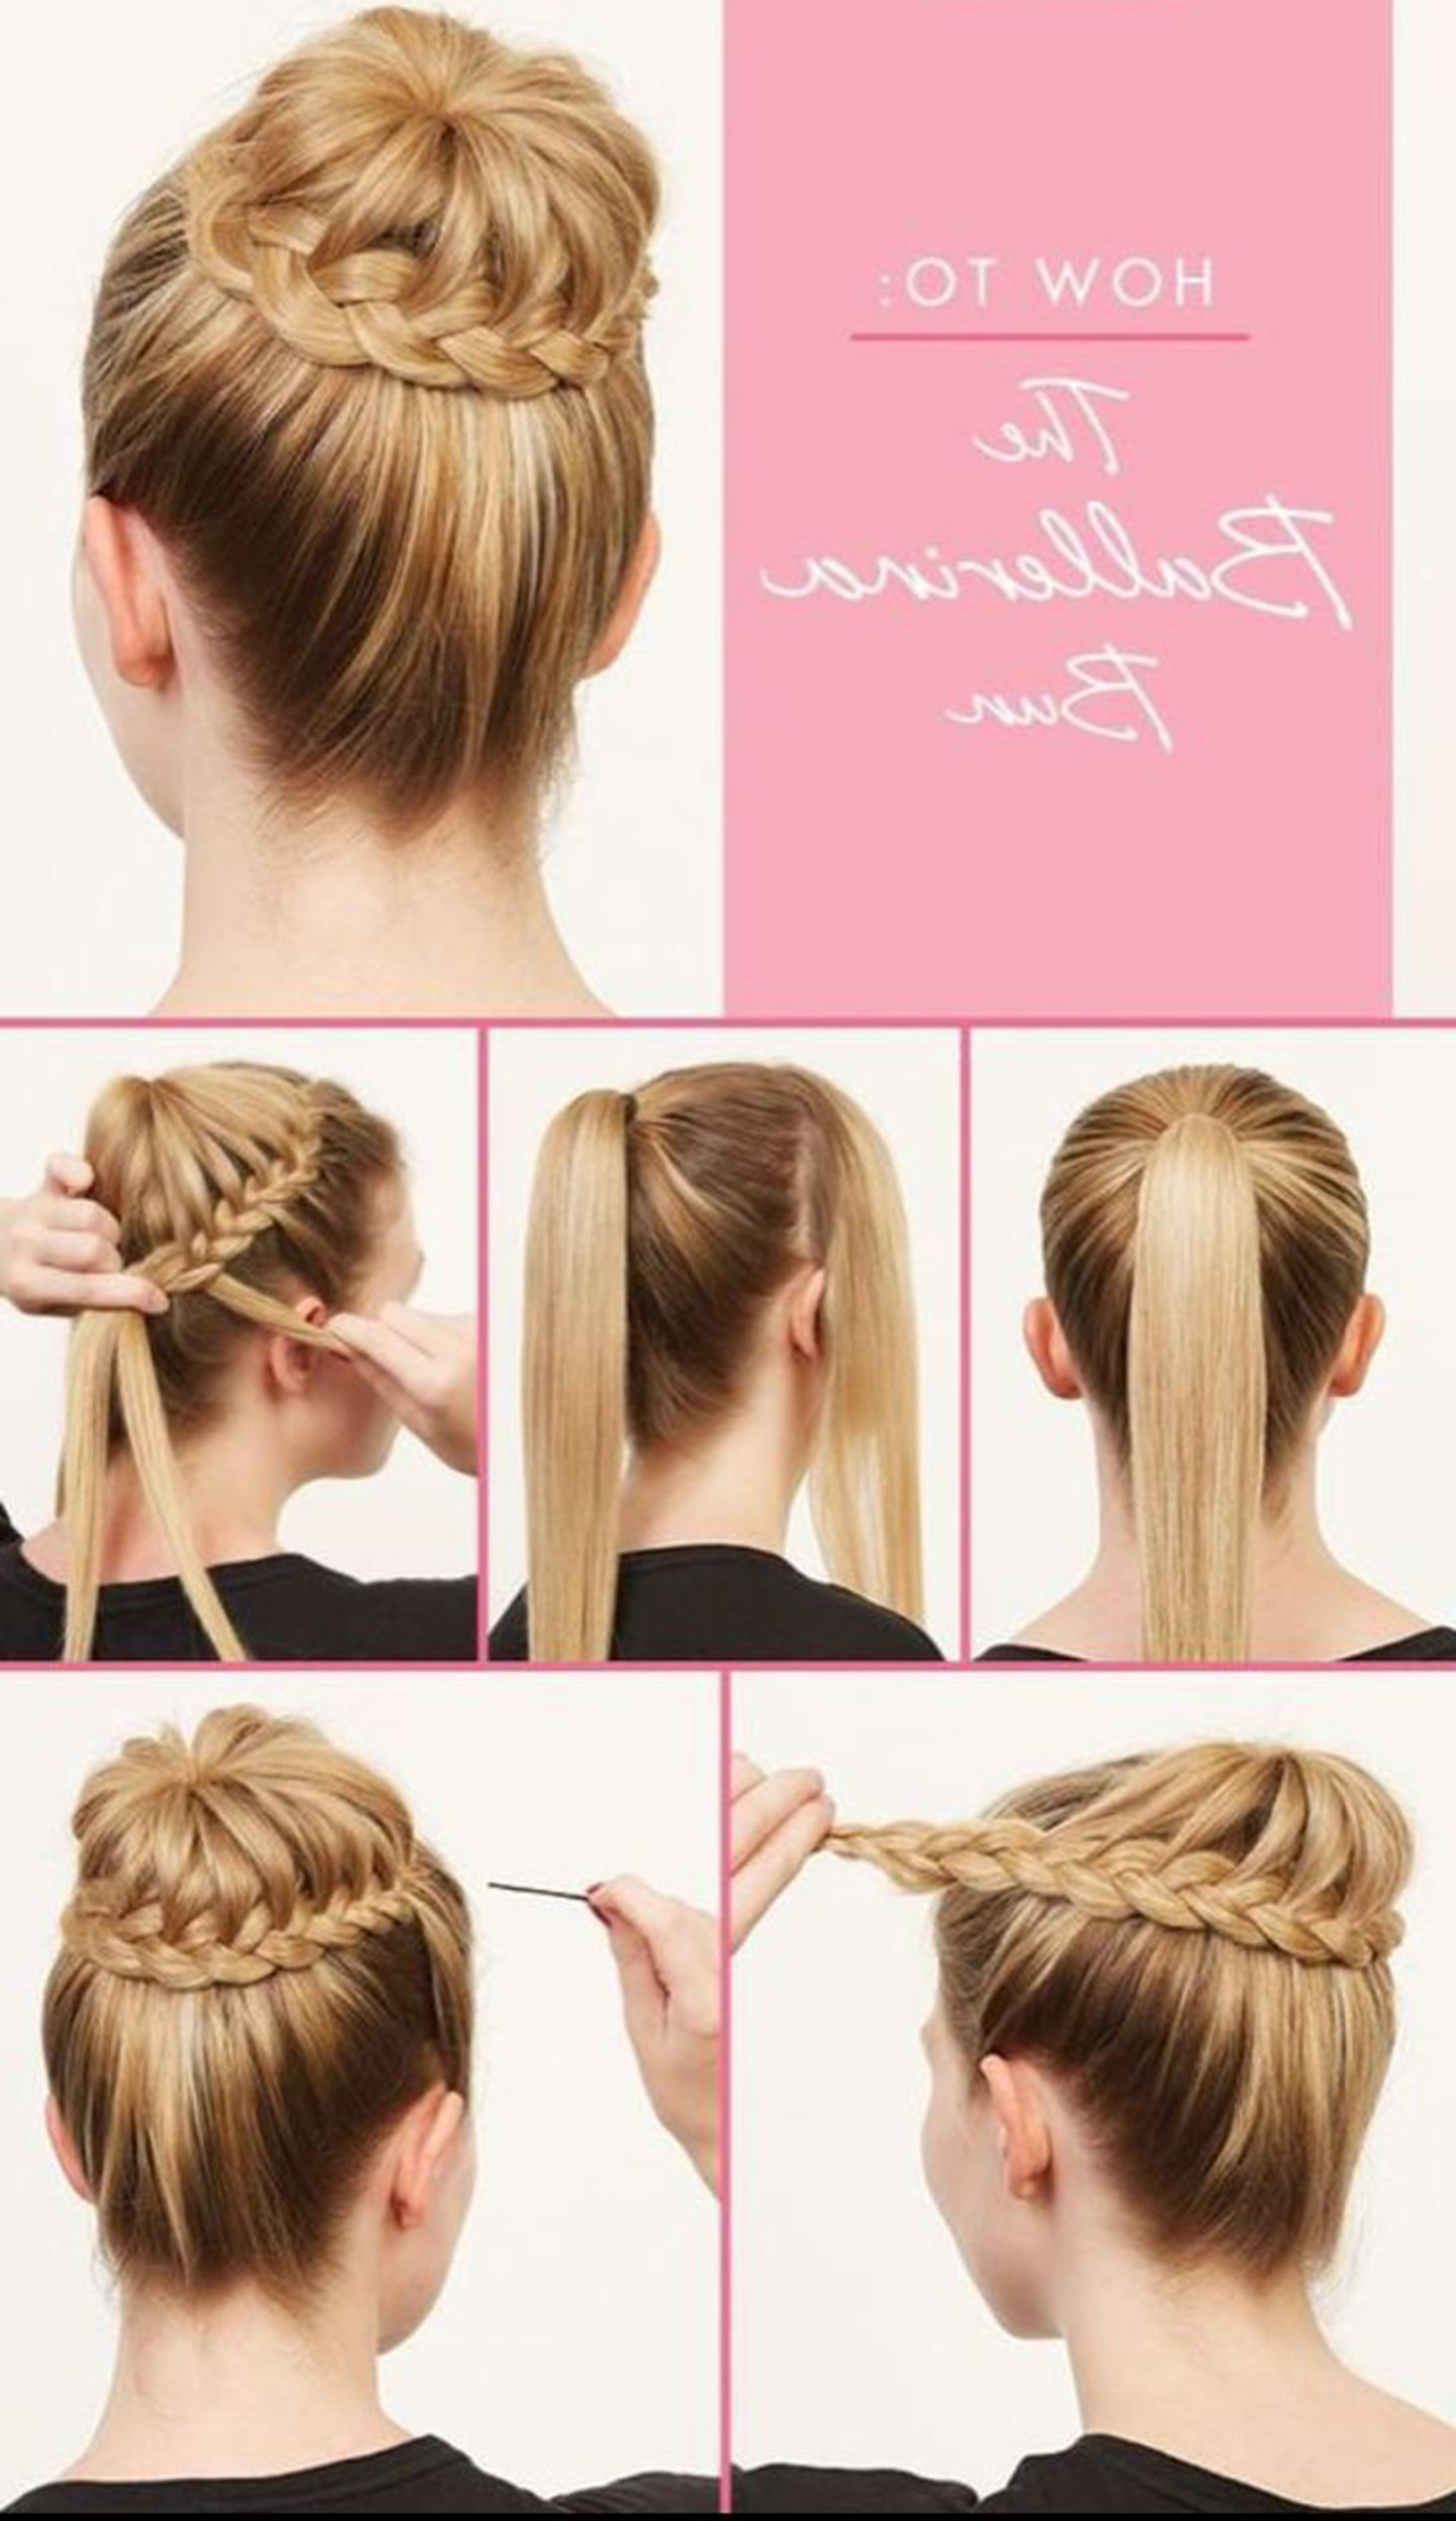 Top 10 Easy Braided Bun Hairstyle Tutorials For Every Hair Length! Throughout Latest Braid And Bun Hairstyles (View 14 of 15)